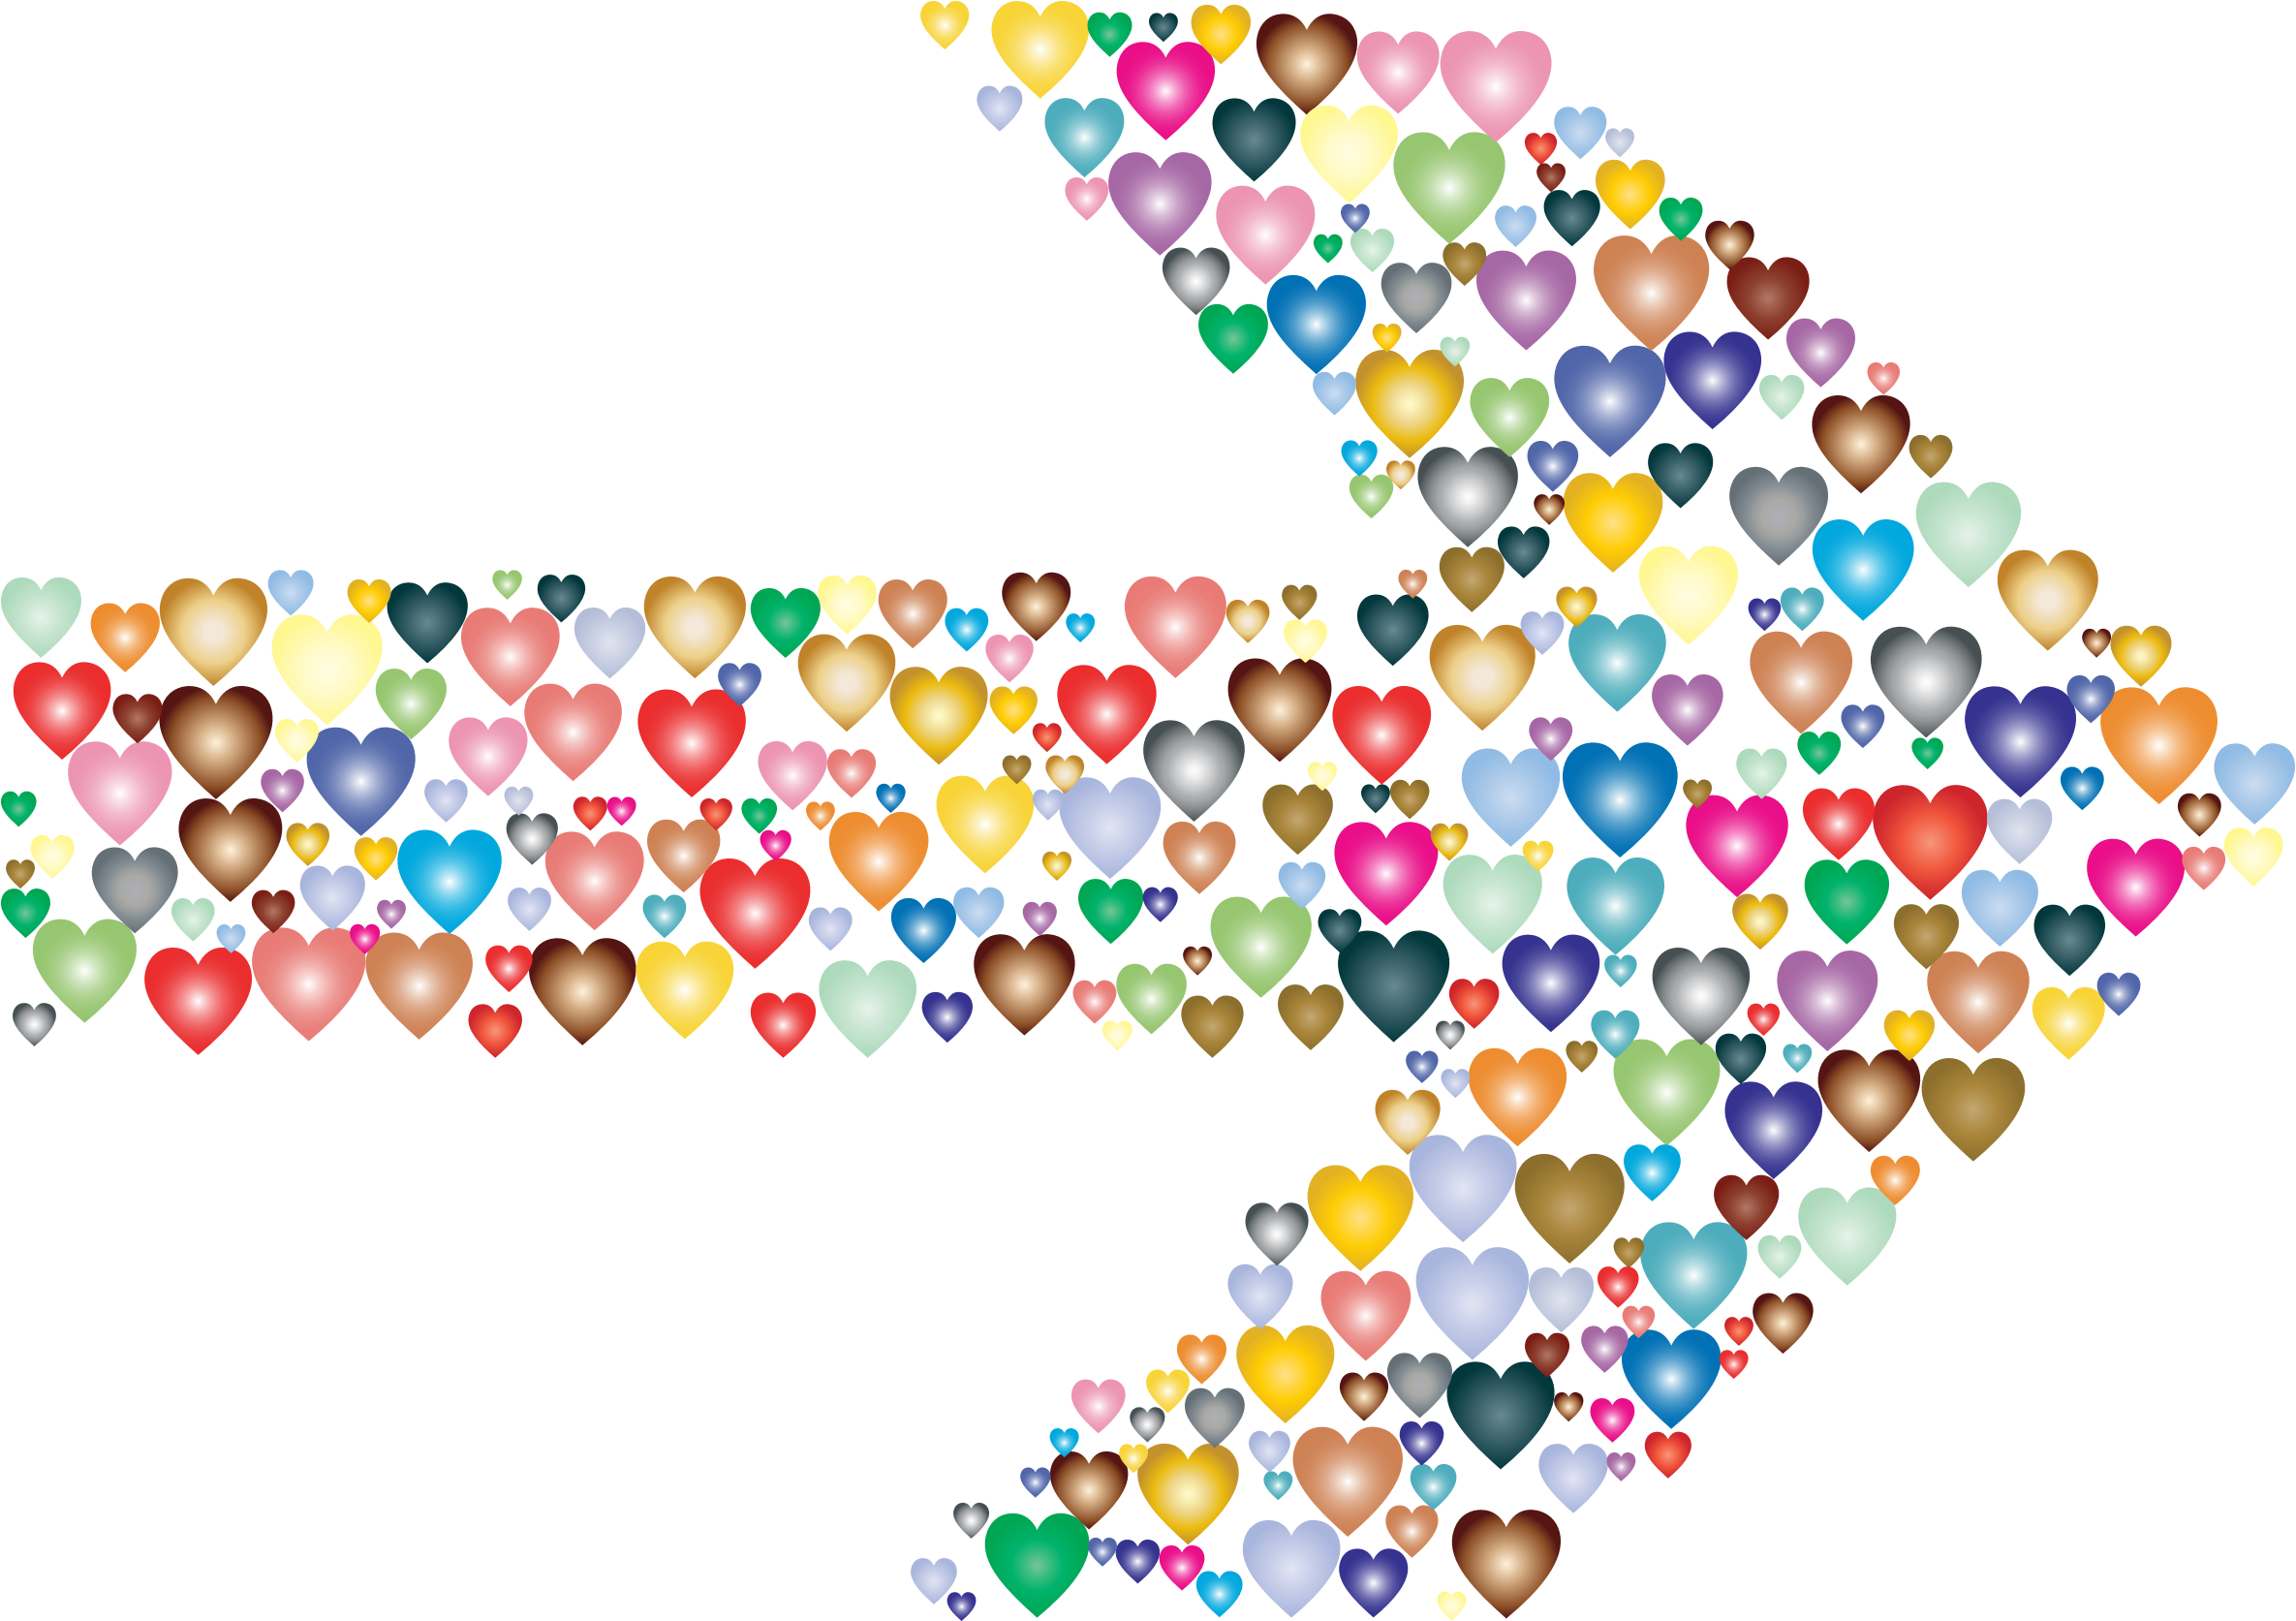 Colorful Hearts Arrow 2 by GDJ